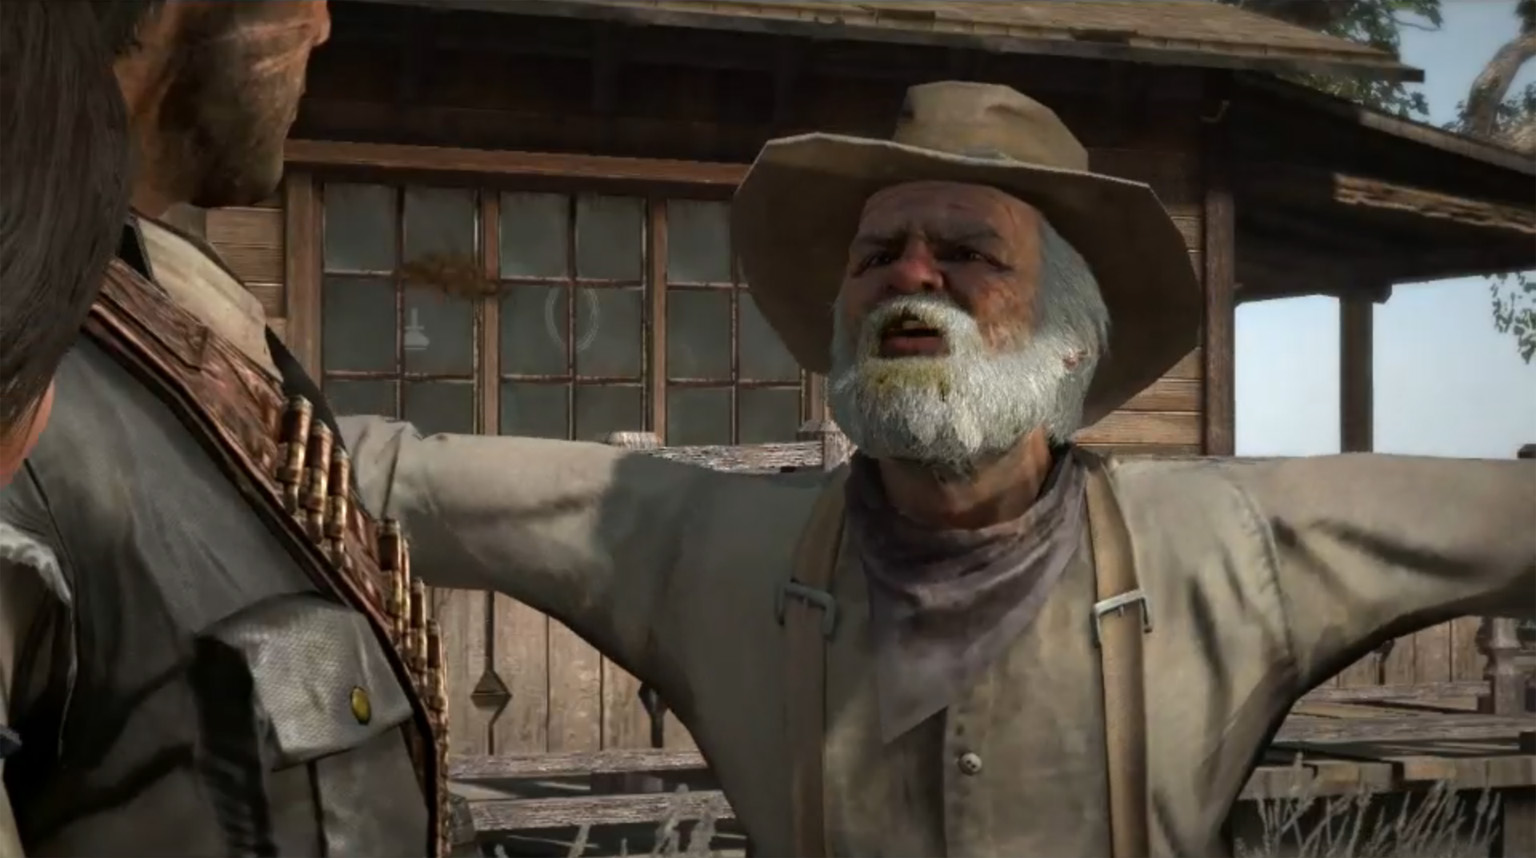 Rdr_uncle_warm_embrace.jpg&f=1